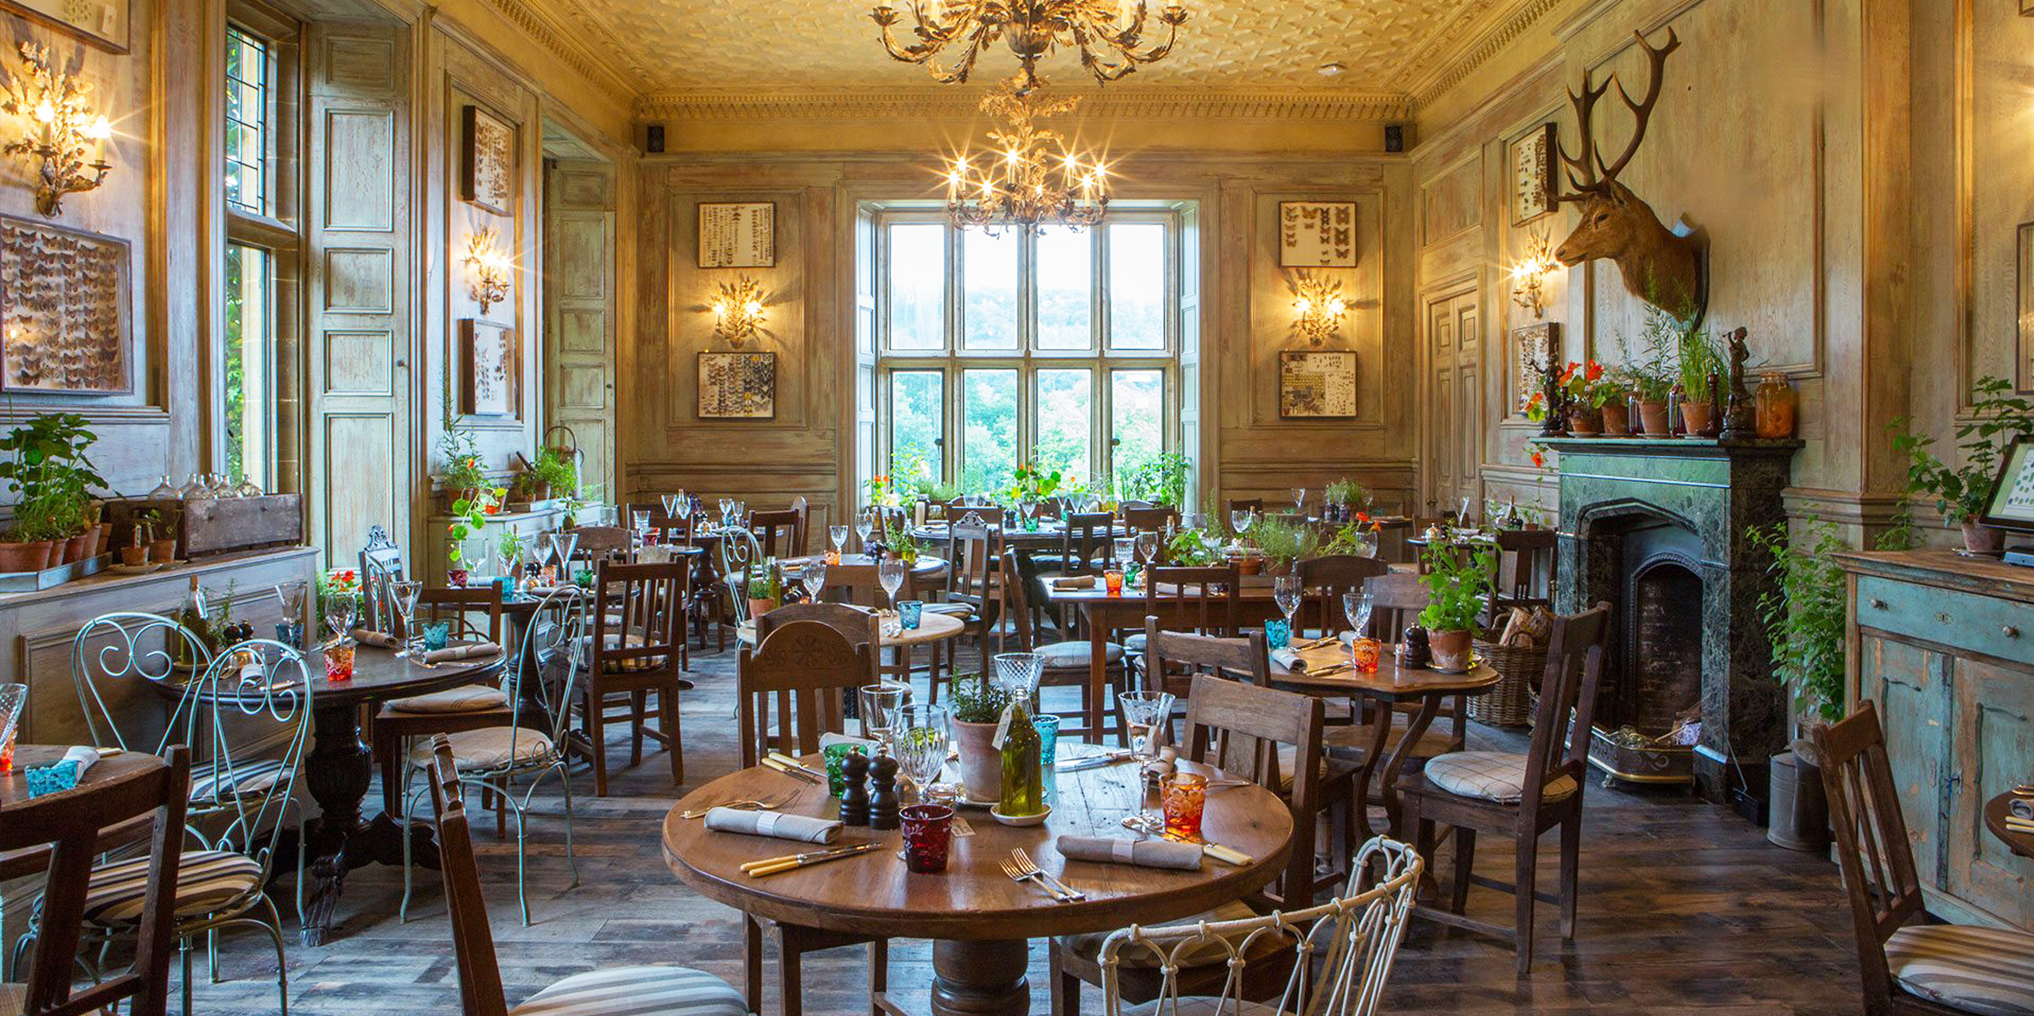 Restaurants With Rooms Are Having A Revival In Their Earliest Form They Were Roadside Inns Accommodating Peasants And Farmers En Route To Or From The